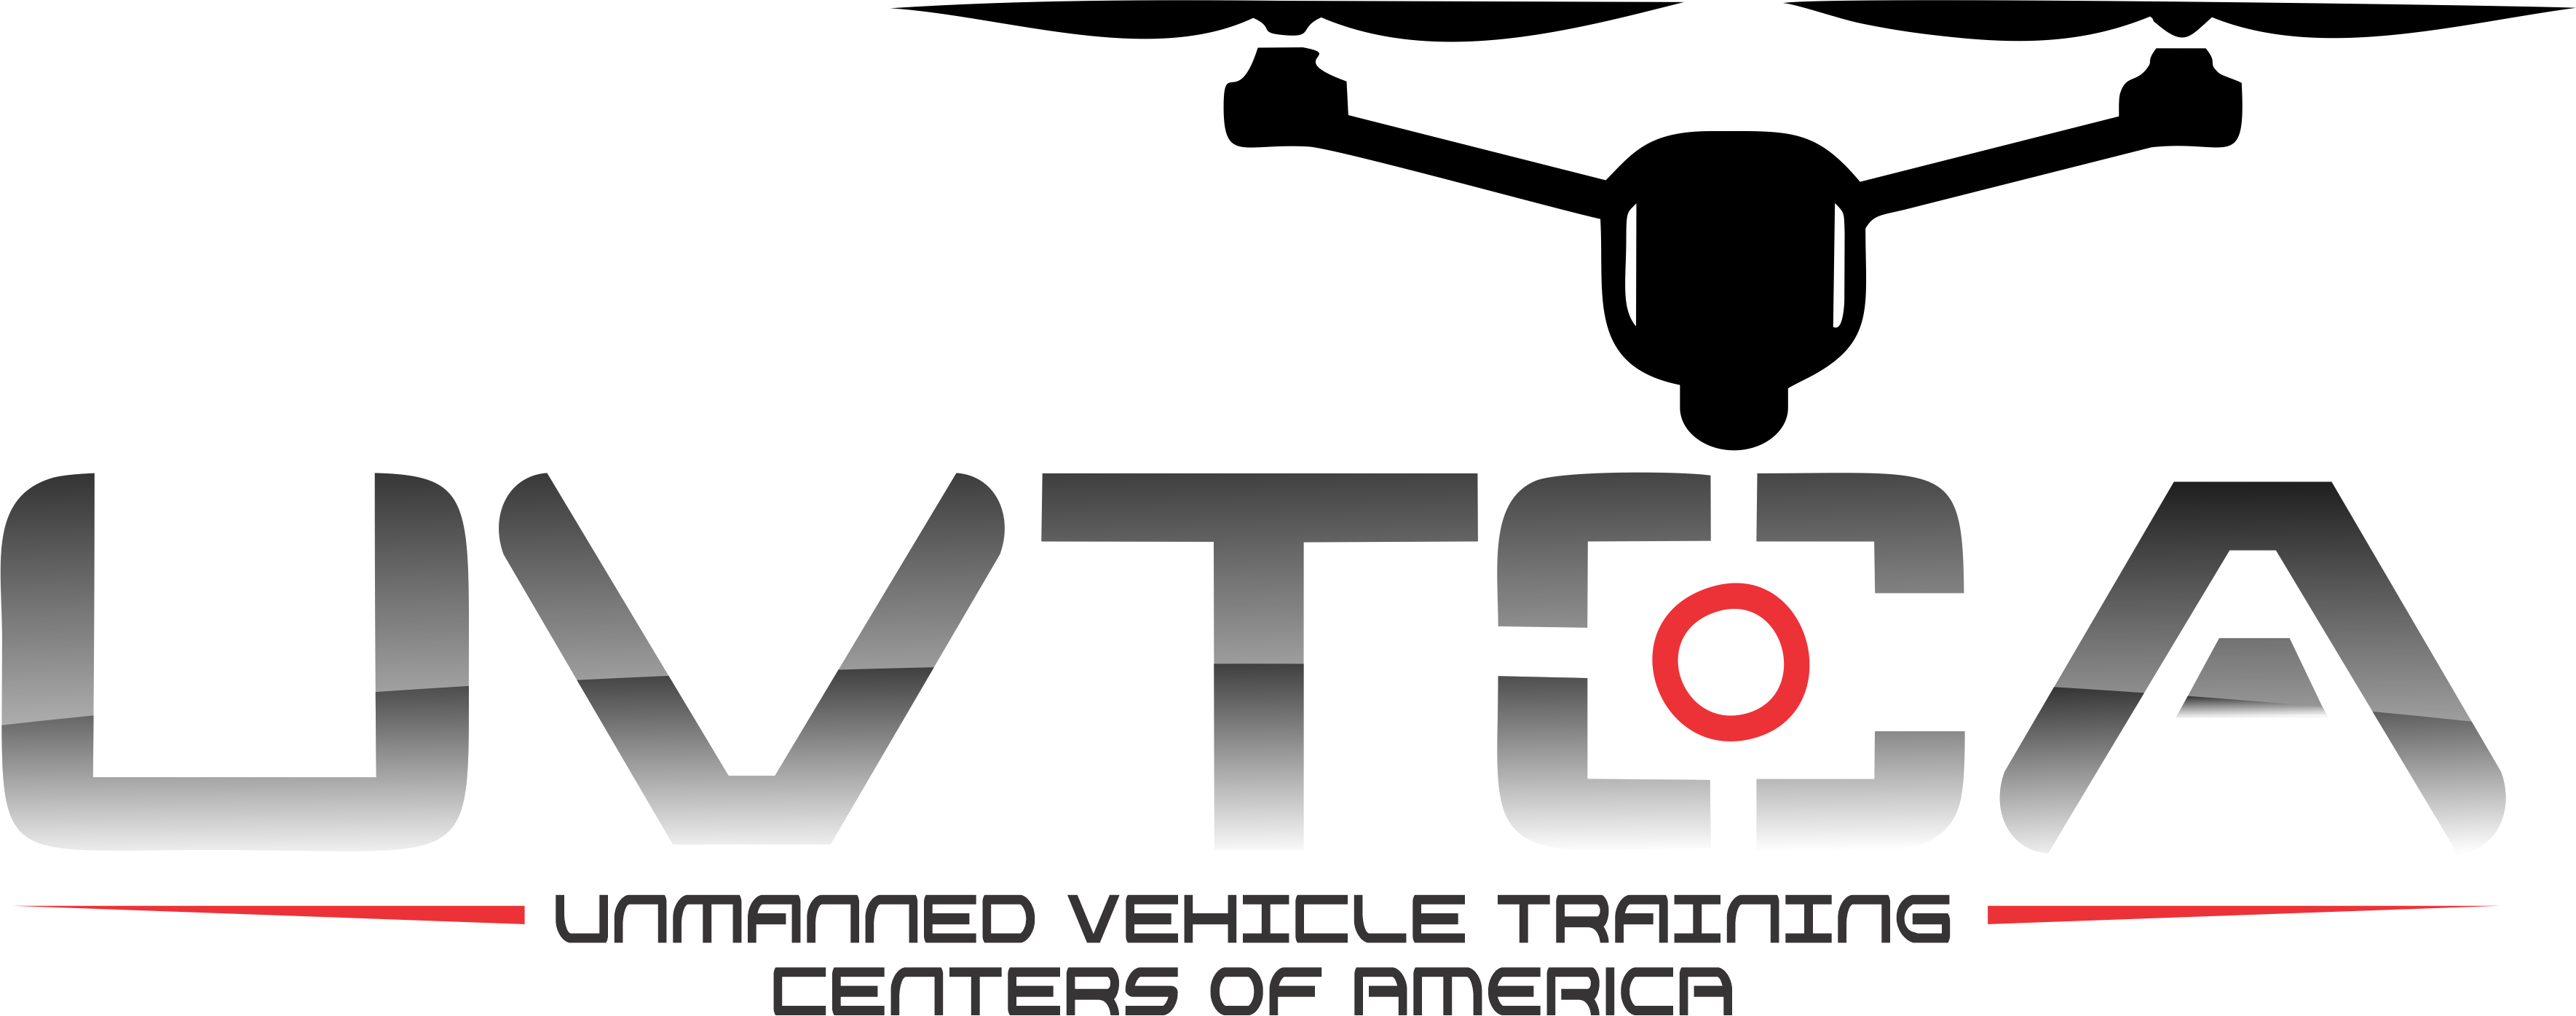 Unmanned Vehicle Training Centers of America